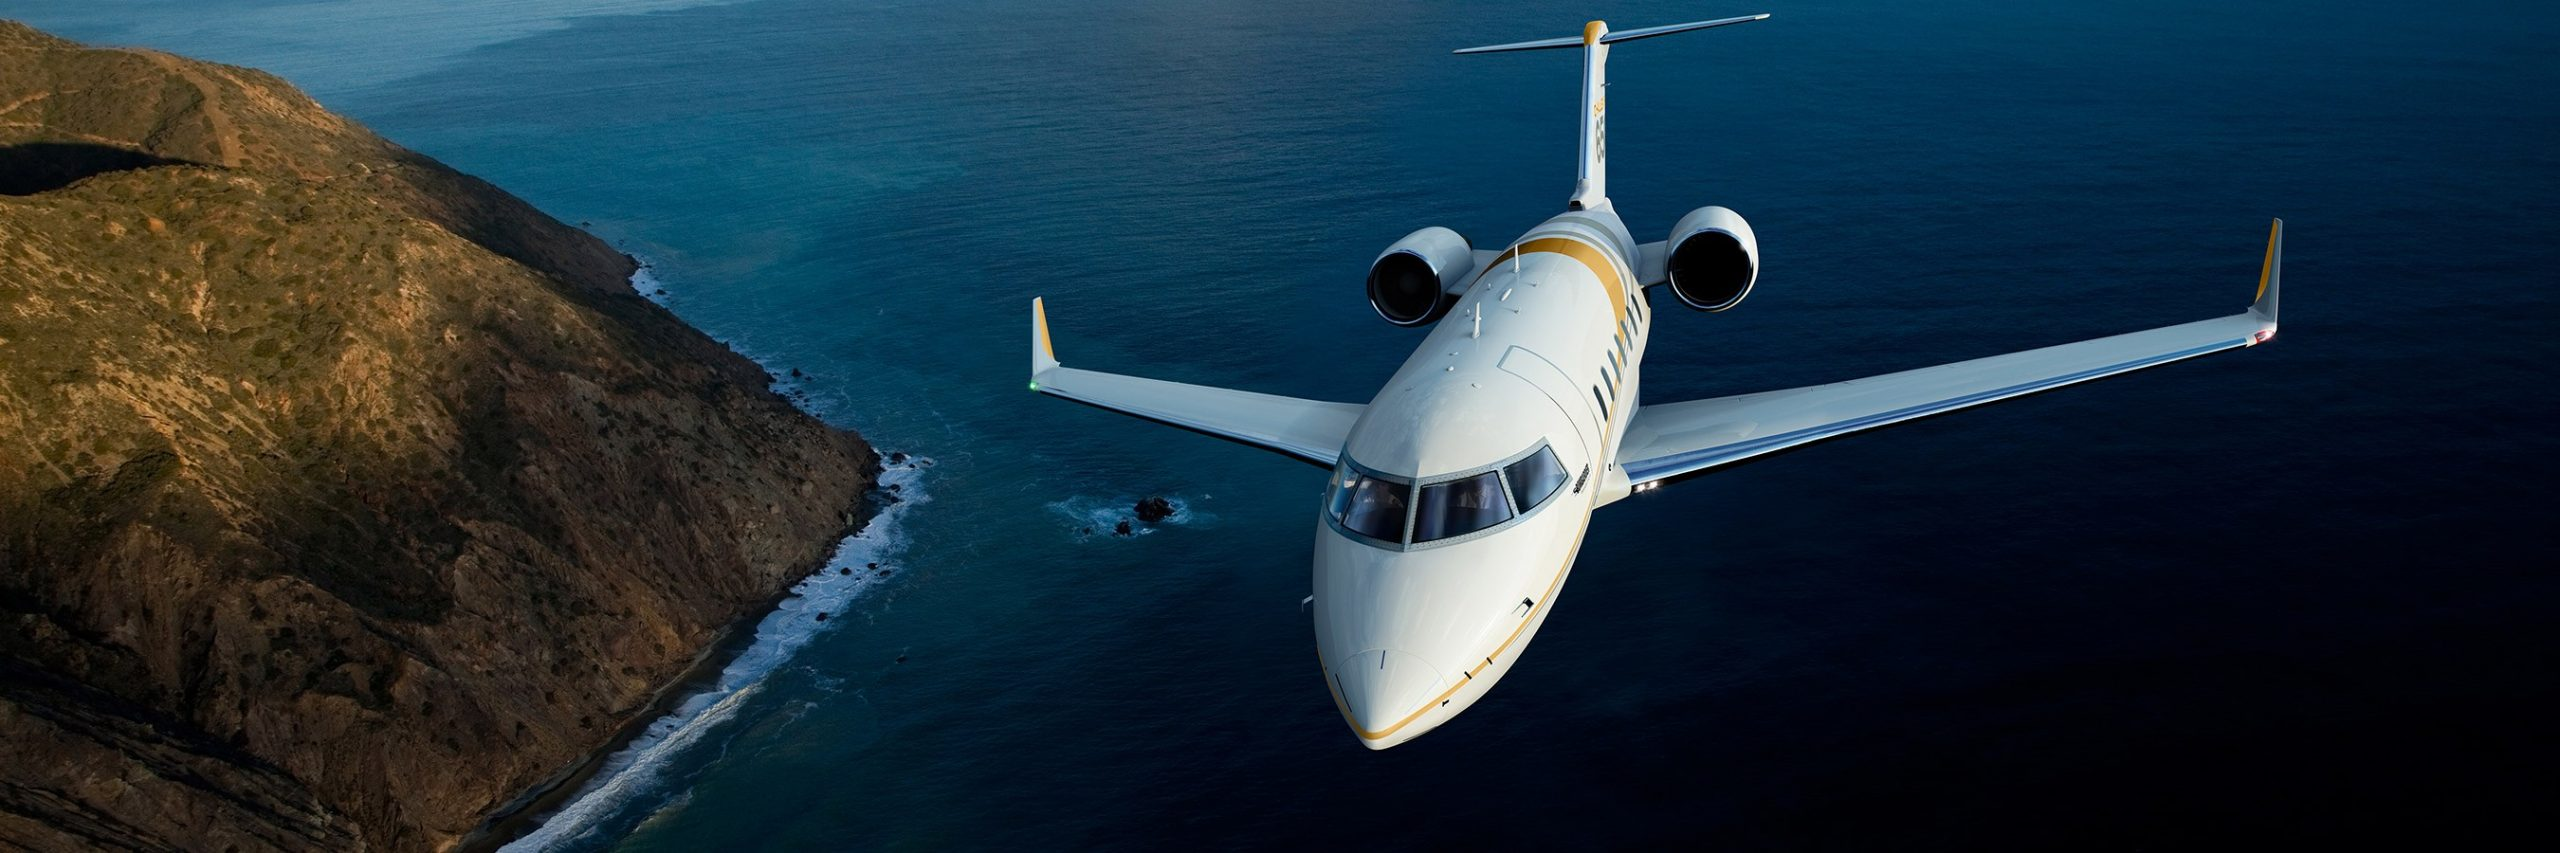 Bombardier private jet charter Bombardier business jet Bombardier corporate jet Bombardier charter1 scaled - Bombardier private jet builder Bombardier private charter and Bombardier jet broker